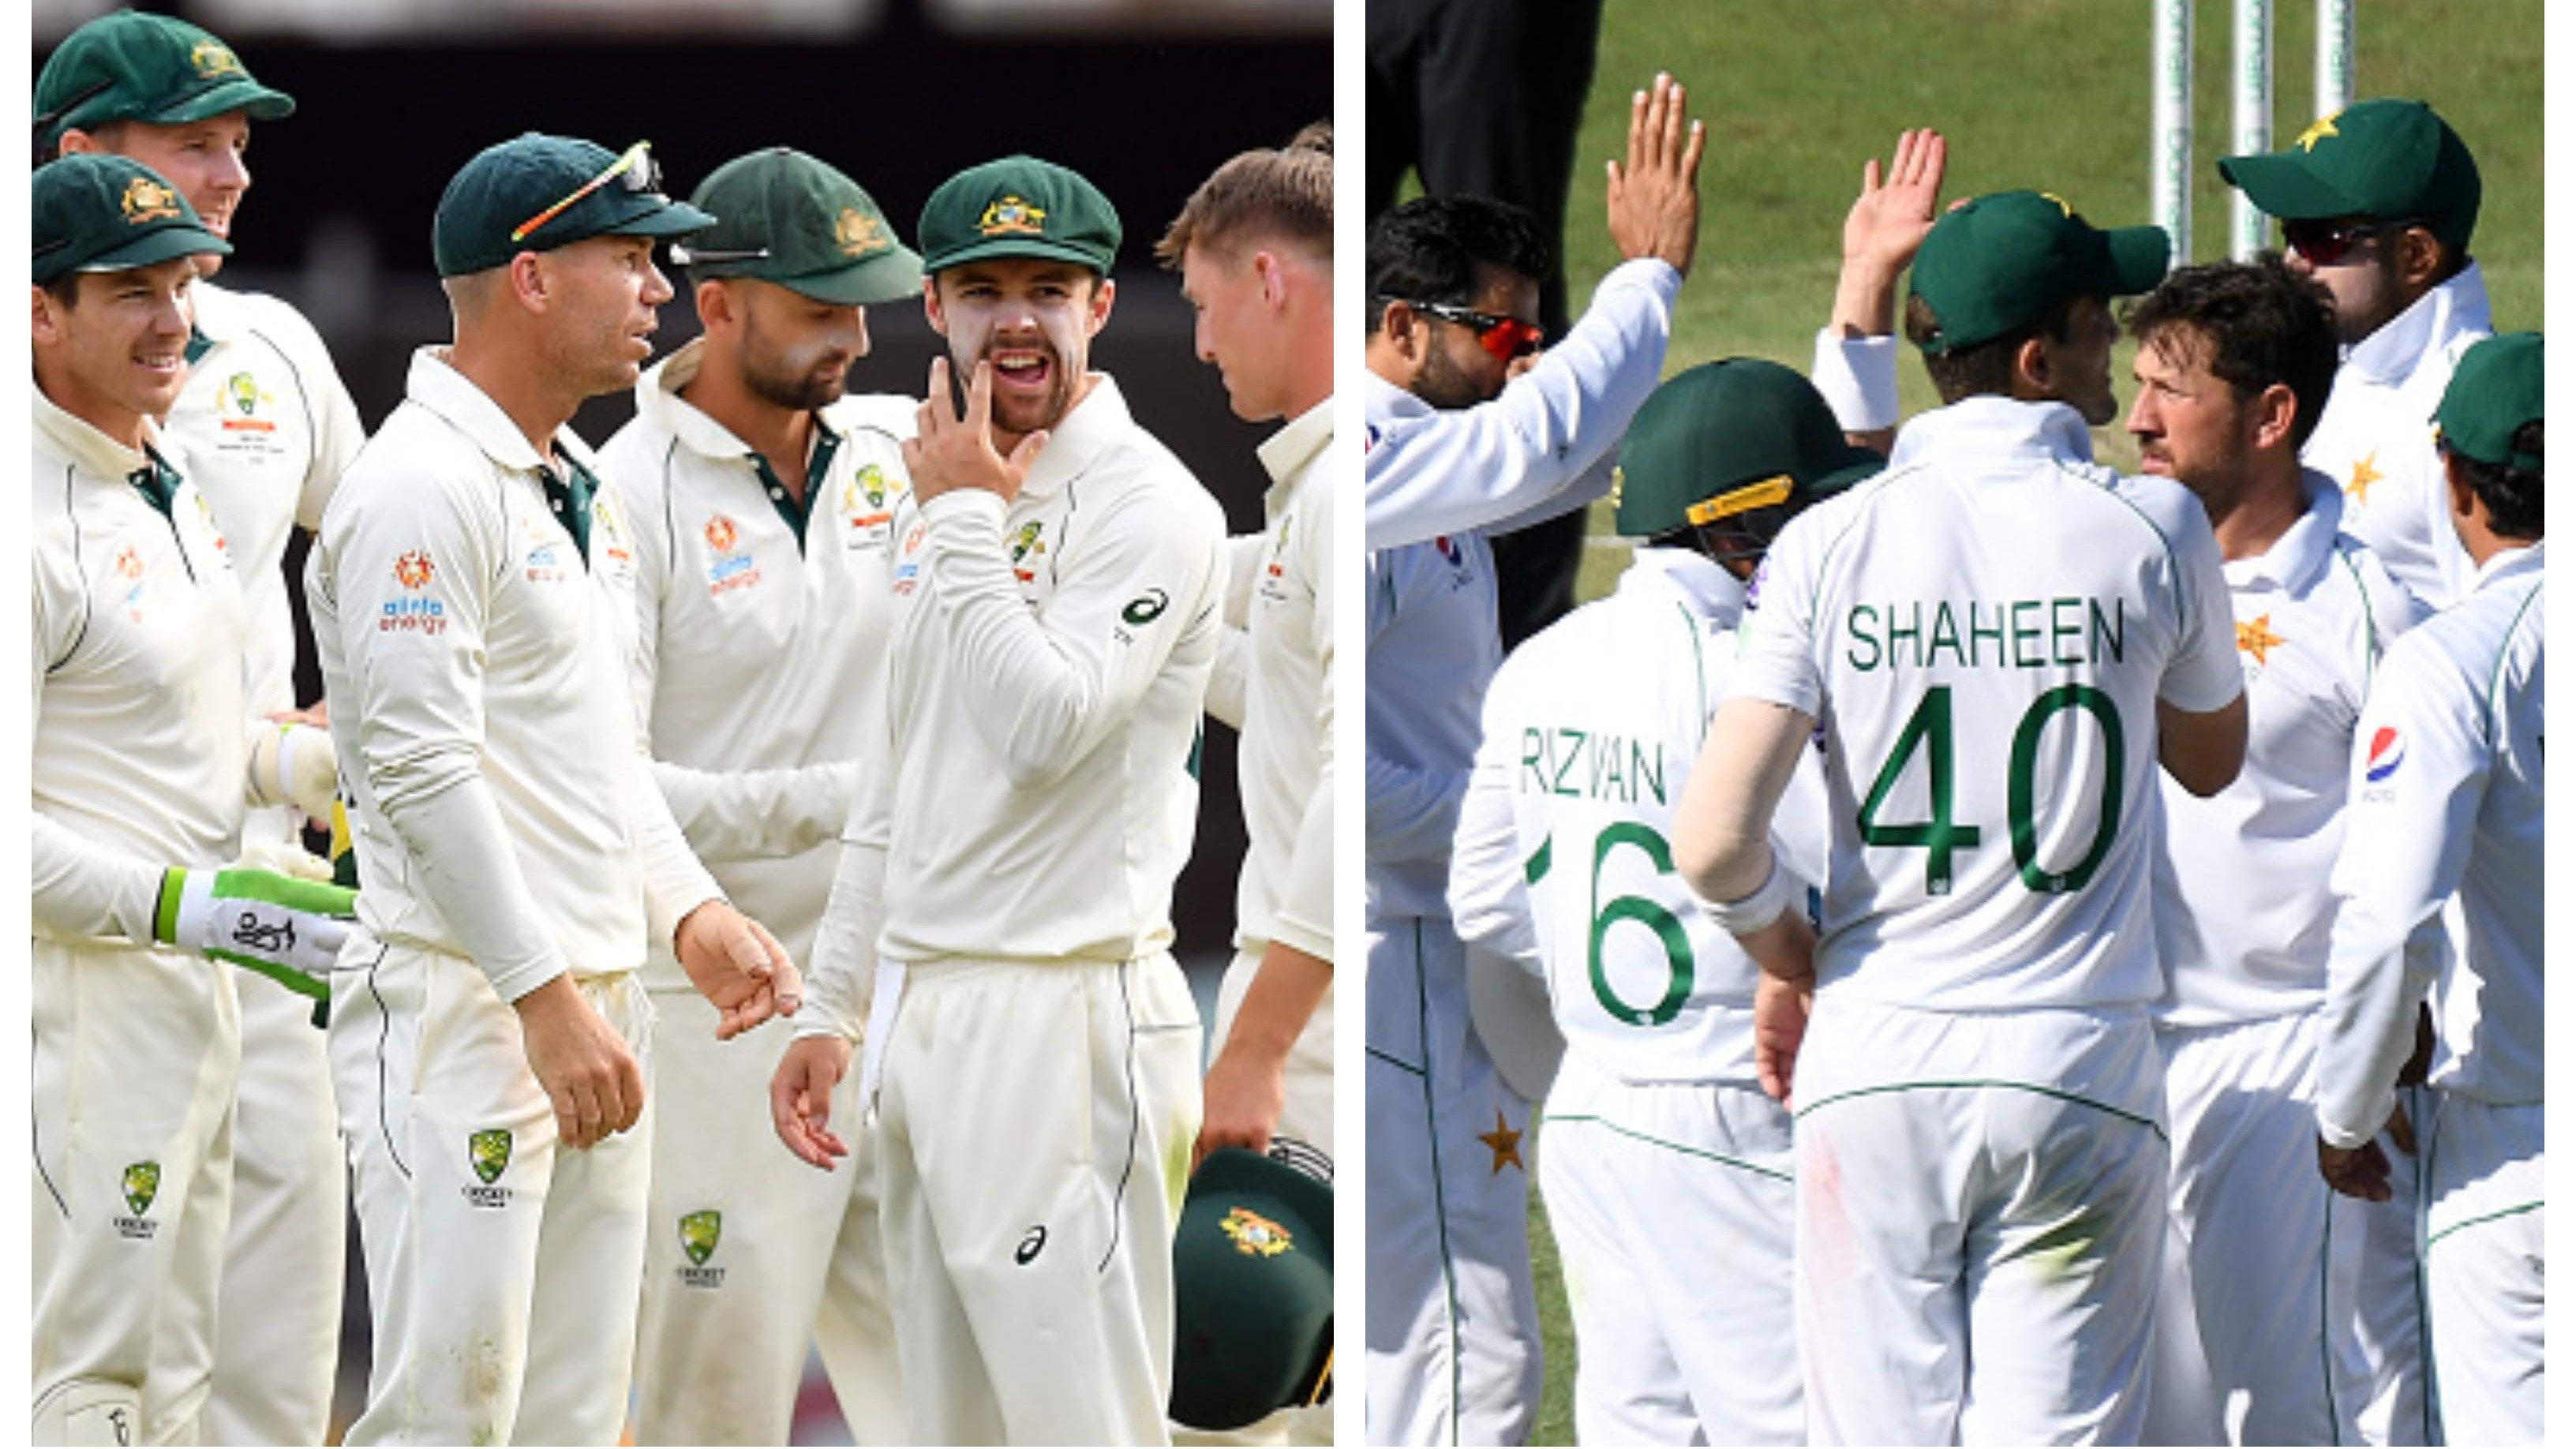 AUS v PAK 2019: Australia to field unchanged playing XI in second Test; visitors set for changes